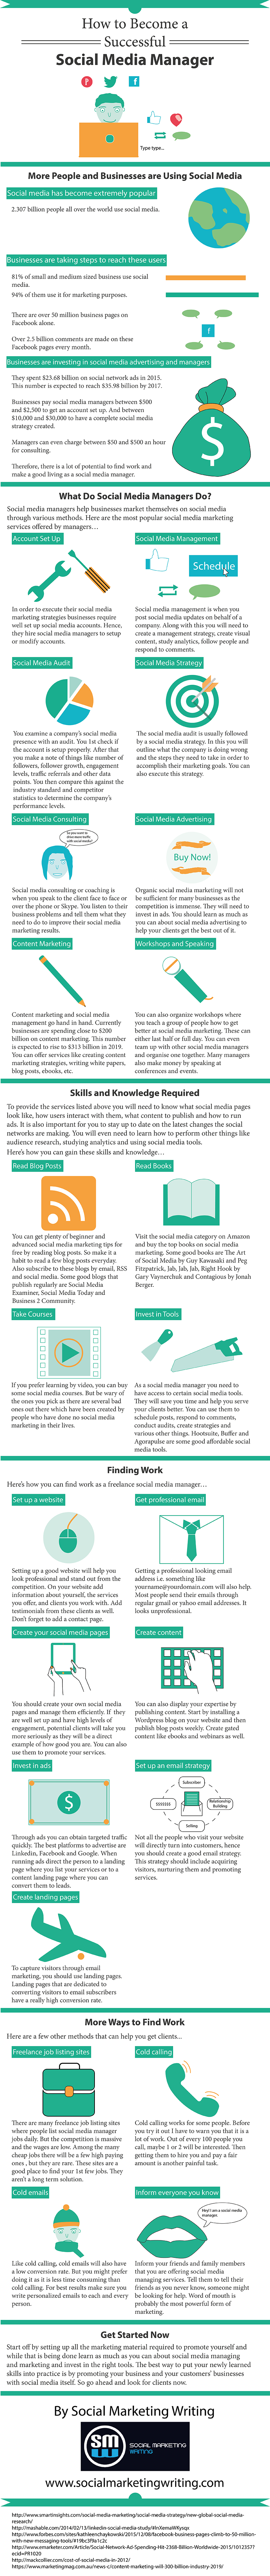 how-to-become-a-successful-social-media-manager-infographic